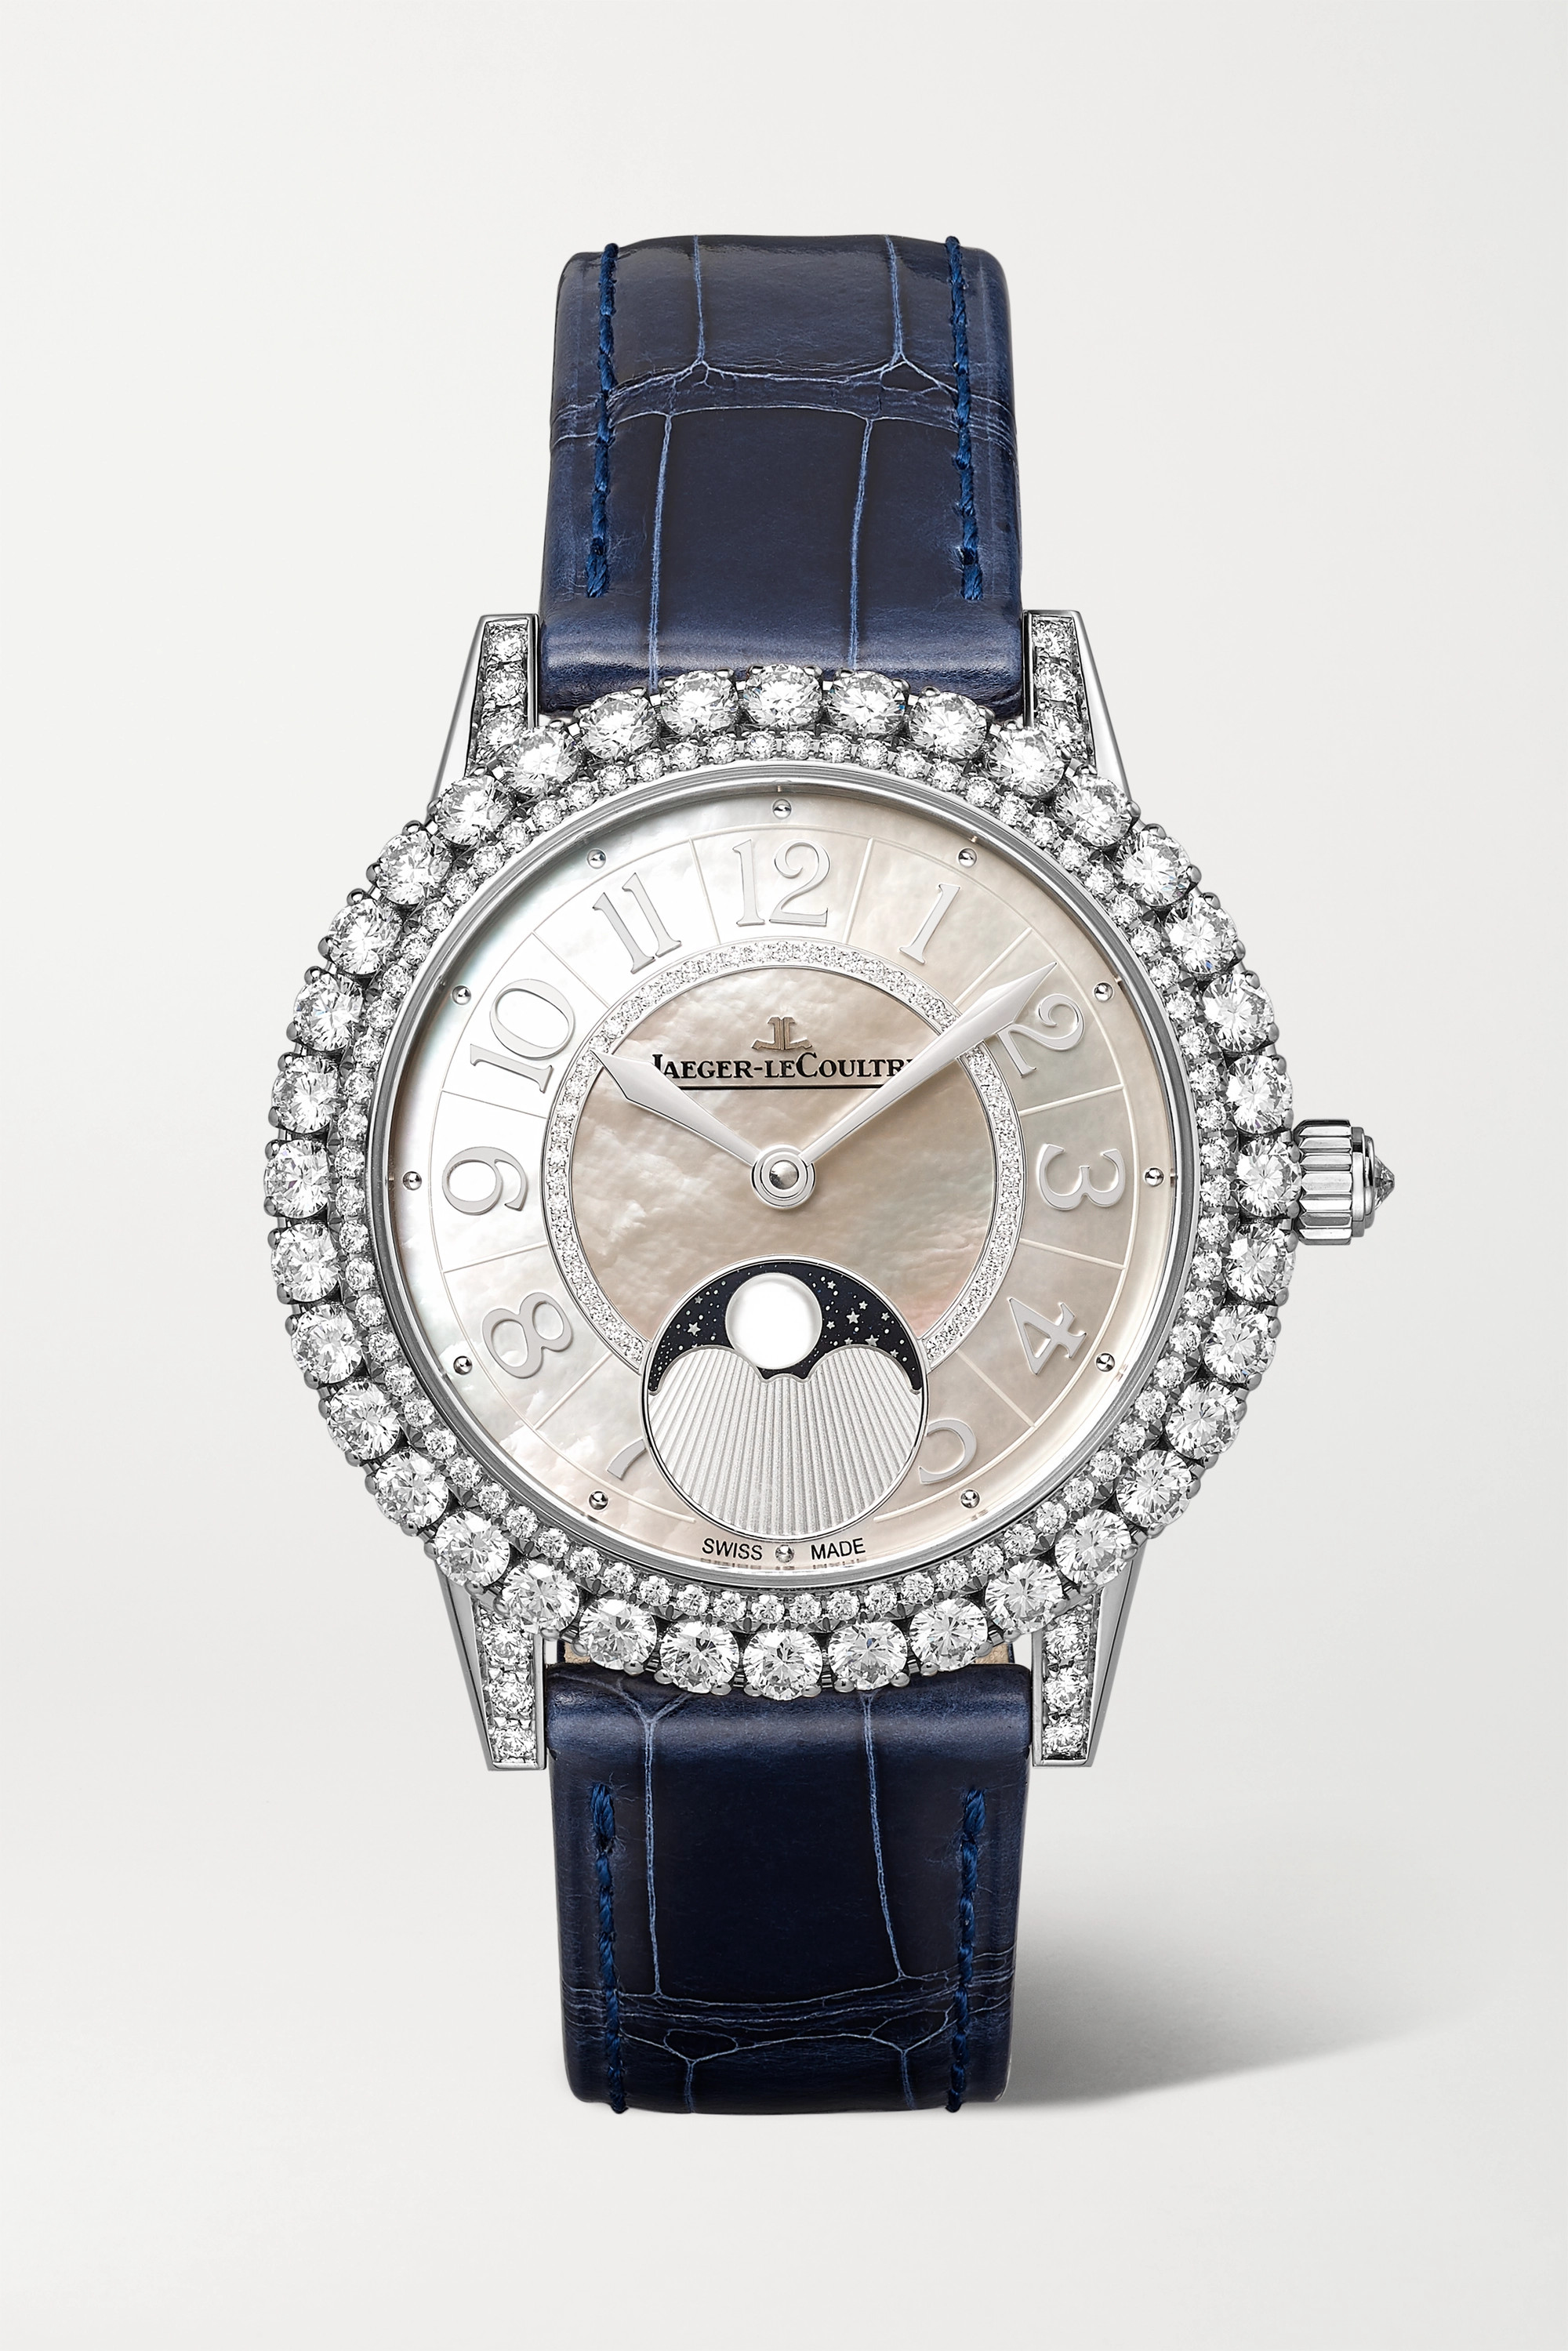 JAEGER-LECOULTRE Dazzling Rendez-Vous Moon Automatic 36mm medium white gold, alligator and diamond watch